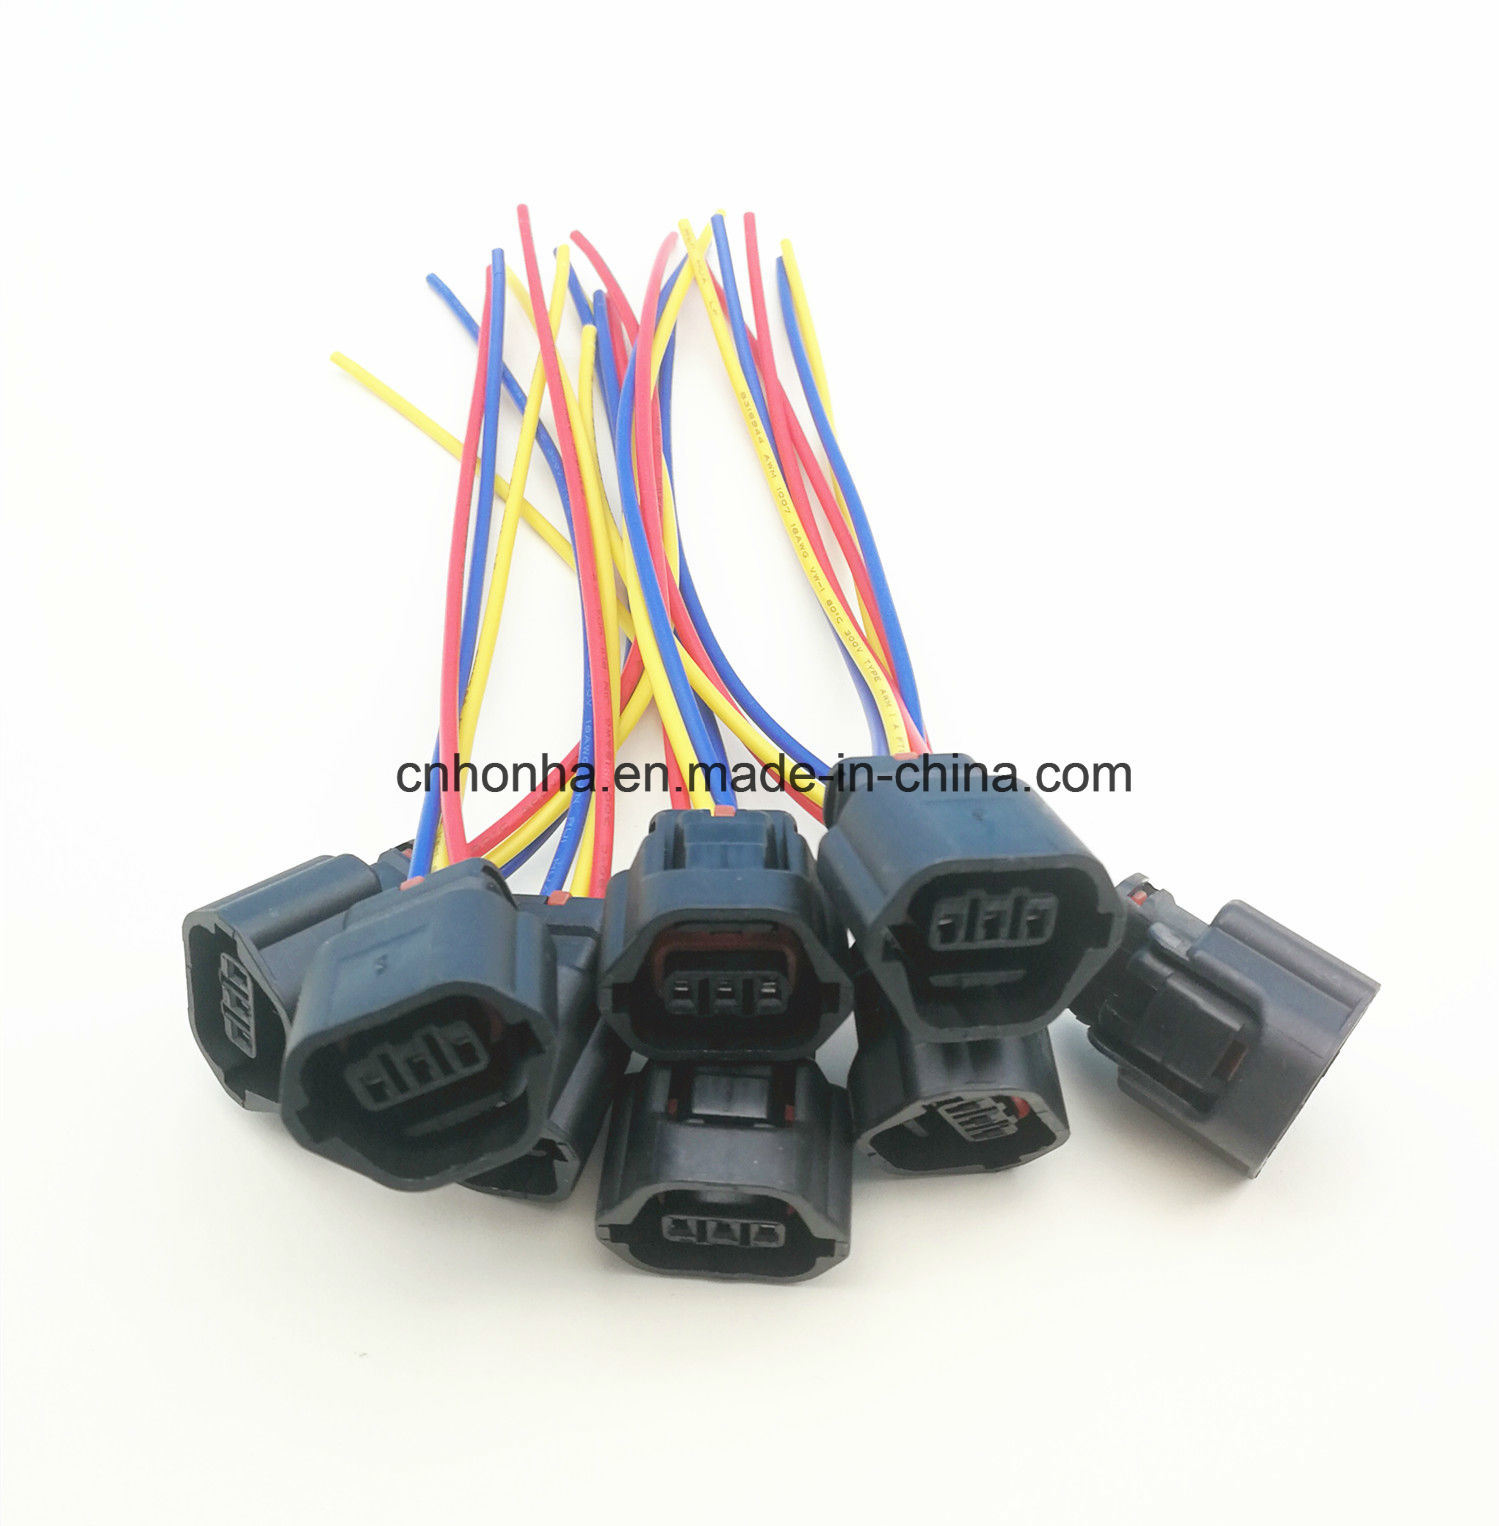 [Hot Item] 7283-8730-30 Yazaki 3 Pin Connector Waterproof Auto Wire on